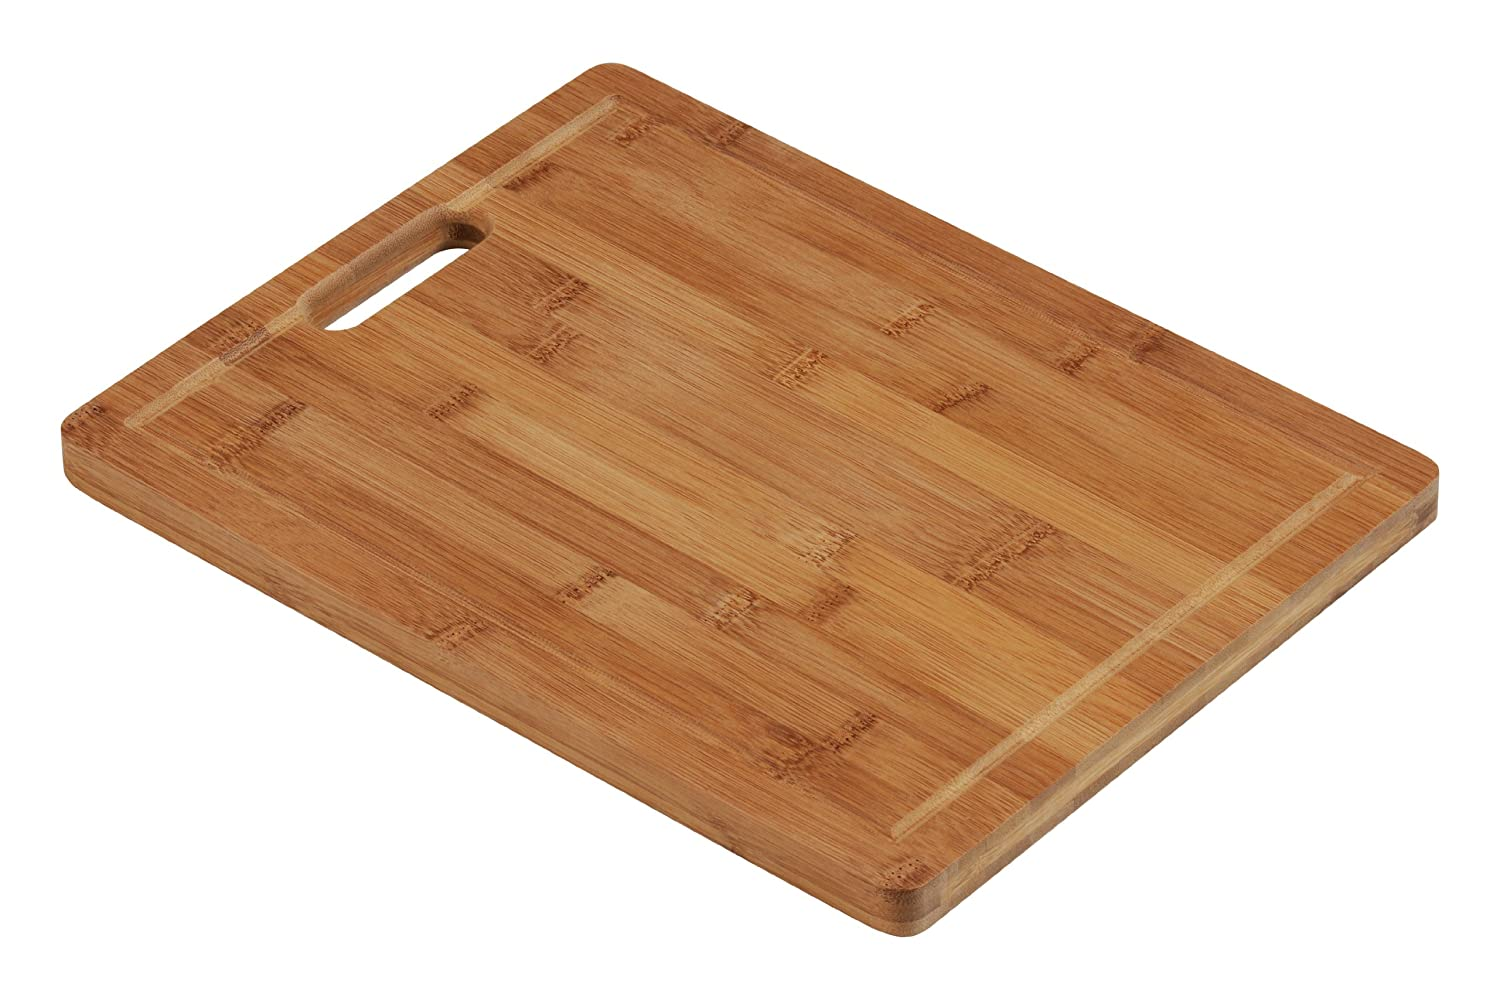 Premier Housewares Chopping Board with Handle - Bamboo - 34 x 26 cm